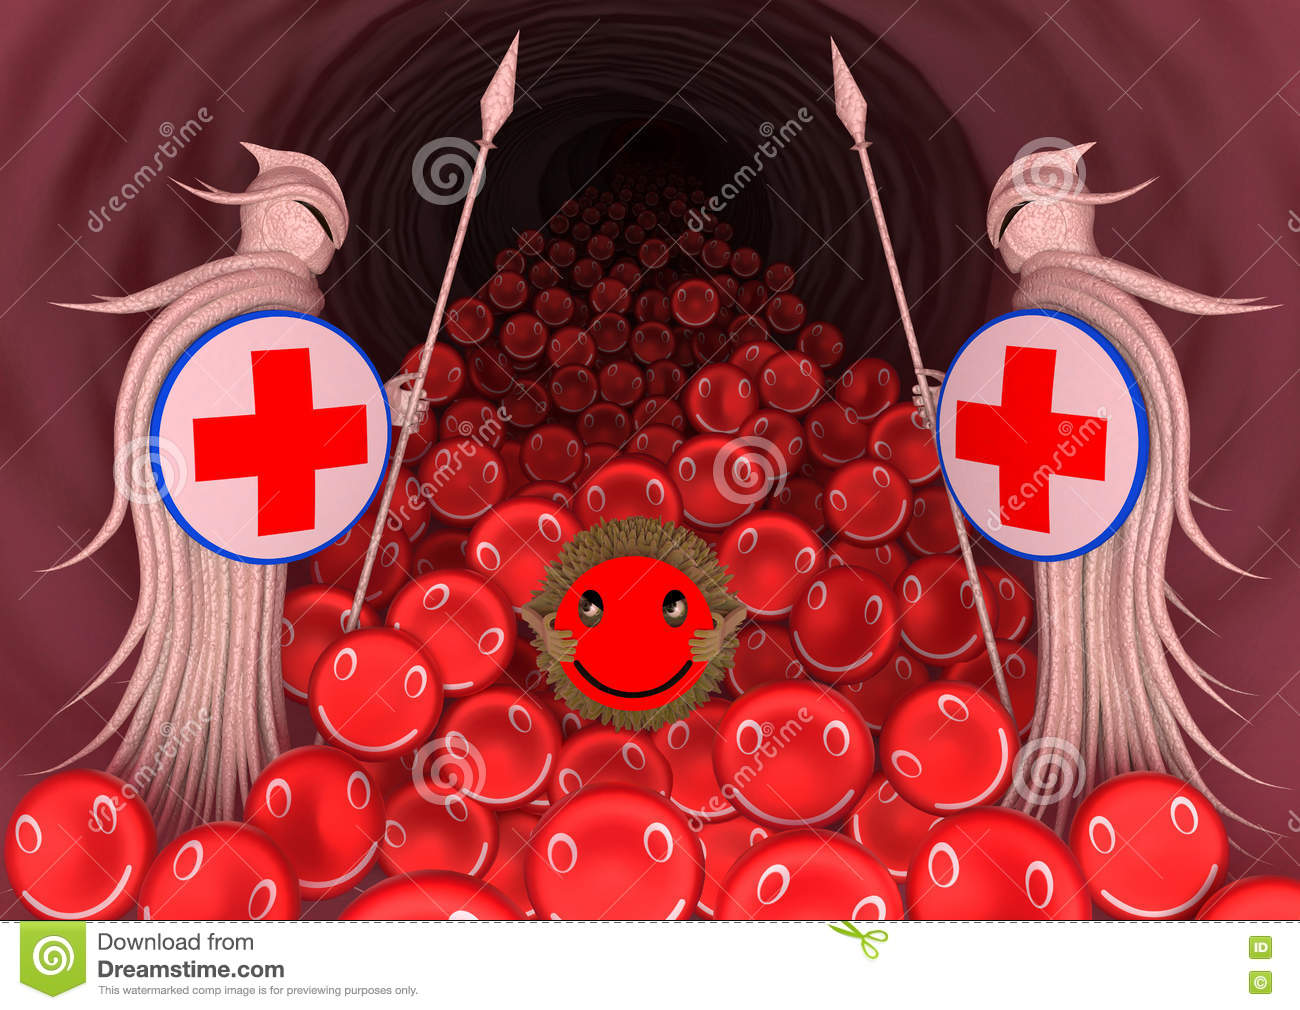 Immune System Protects The Body Against The Virus Got Into The Blood